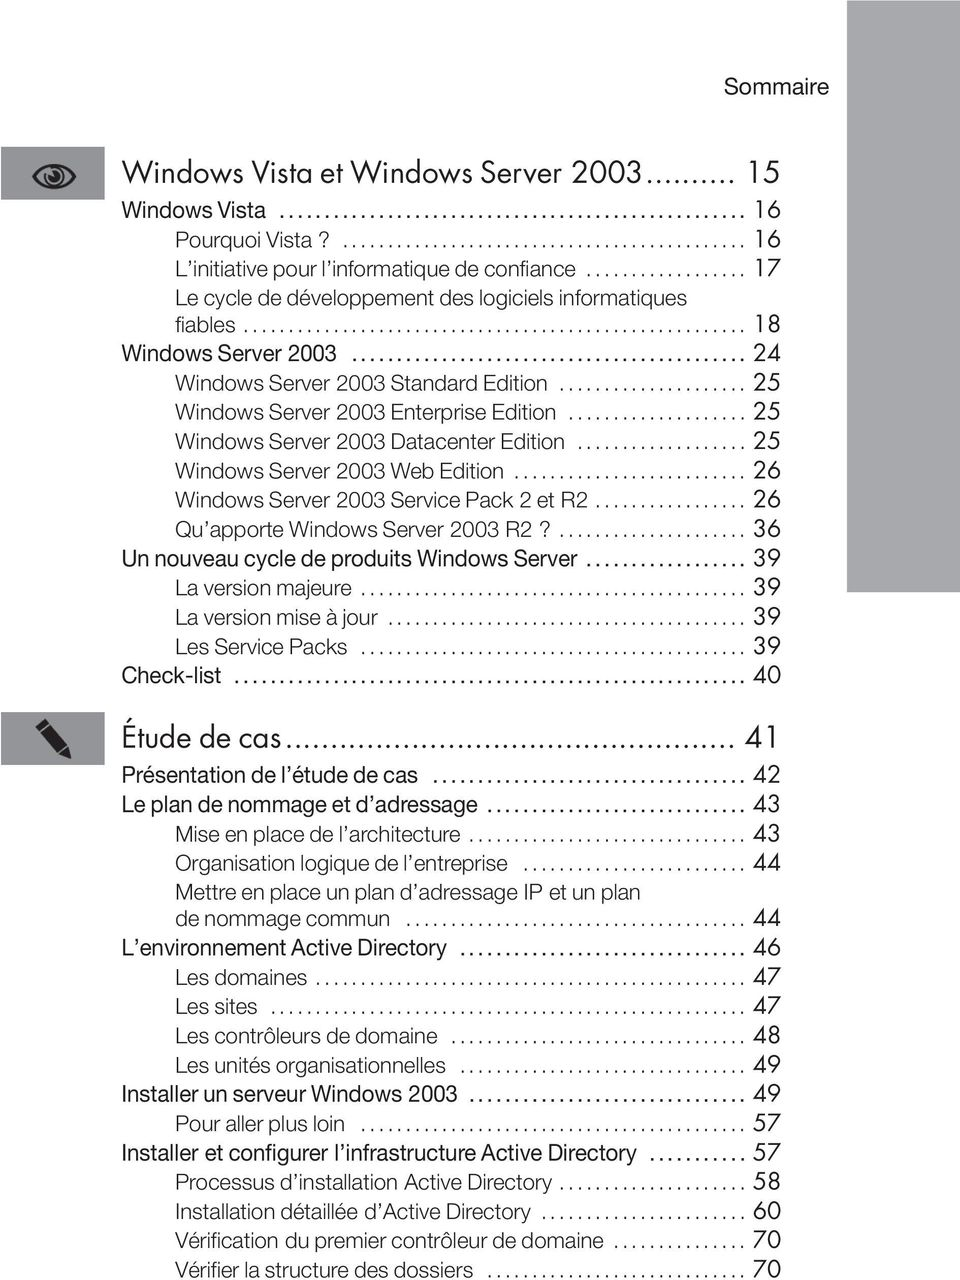 .. 26 Windows Server 2003 Service Pack 2 et R2... 26 Qu apporte Windows Server 2003 R2?... 36 Un nouveau cycle de produits Windows Server... 39 La version majeure... 39 La version mise à jour.